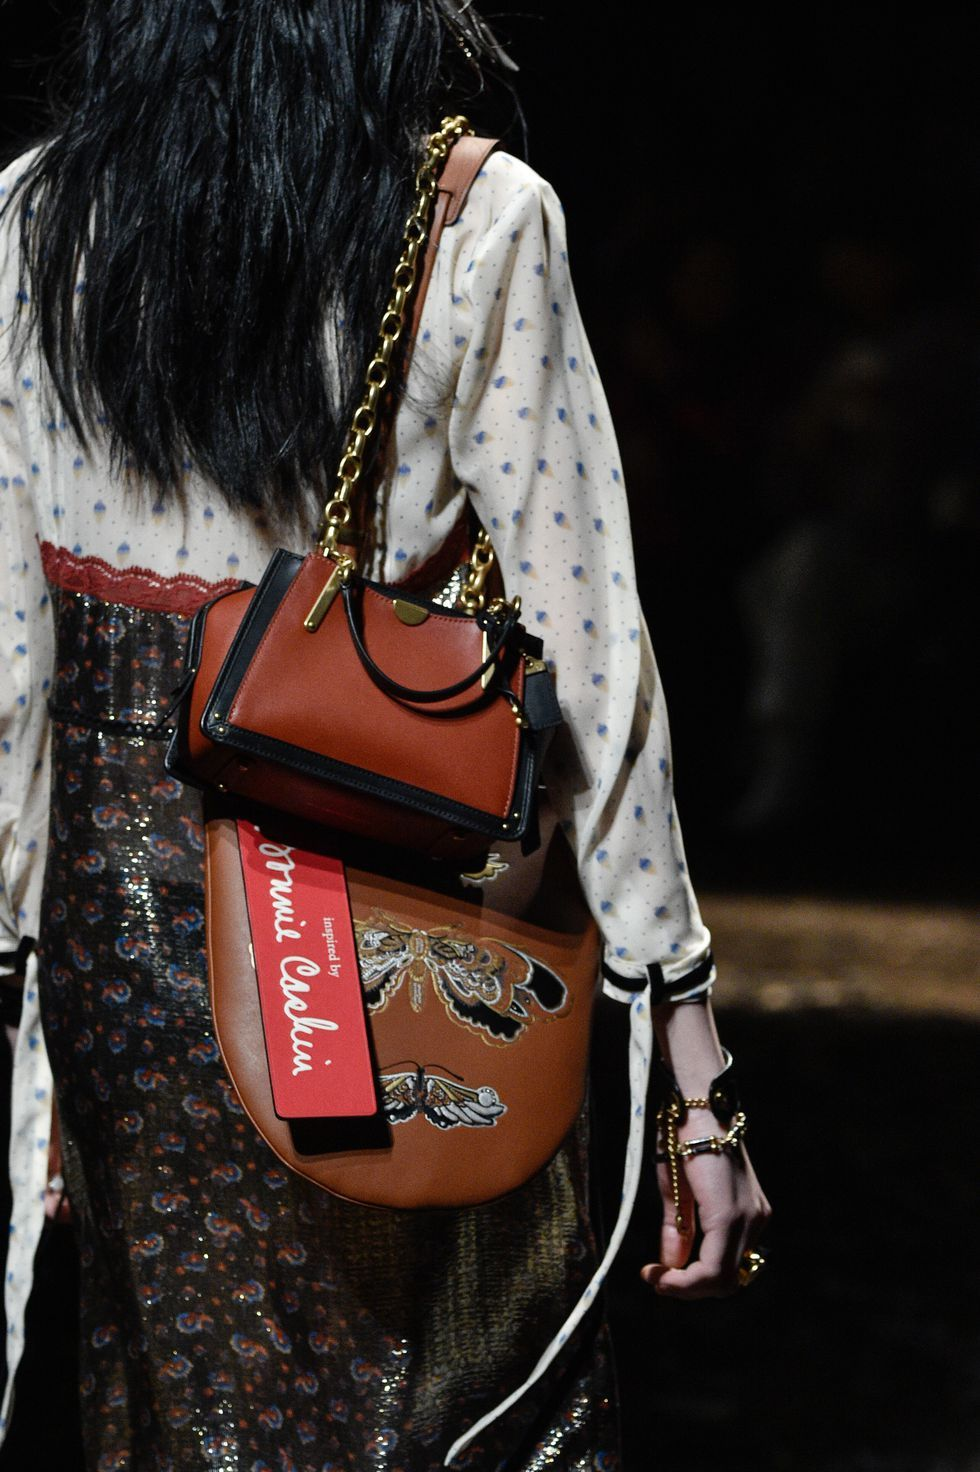 1dcef21132e3 7 Fall Bag Trends That Are About To Take Over   bag   Bags, Purses ...